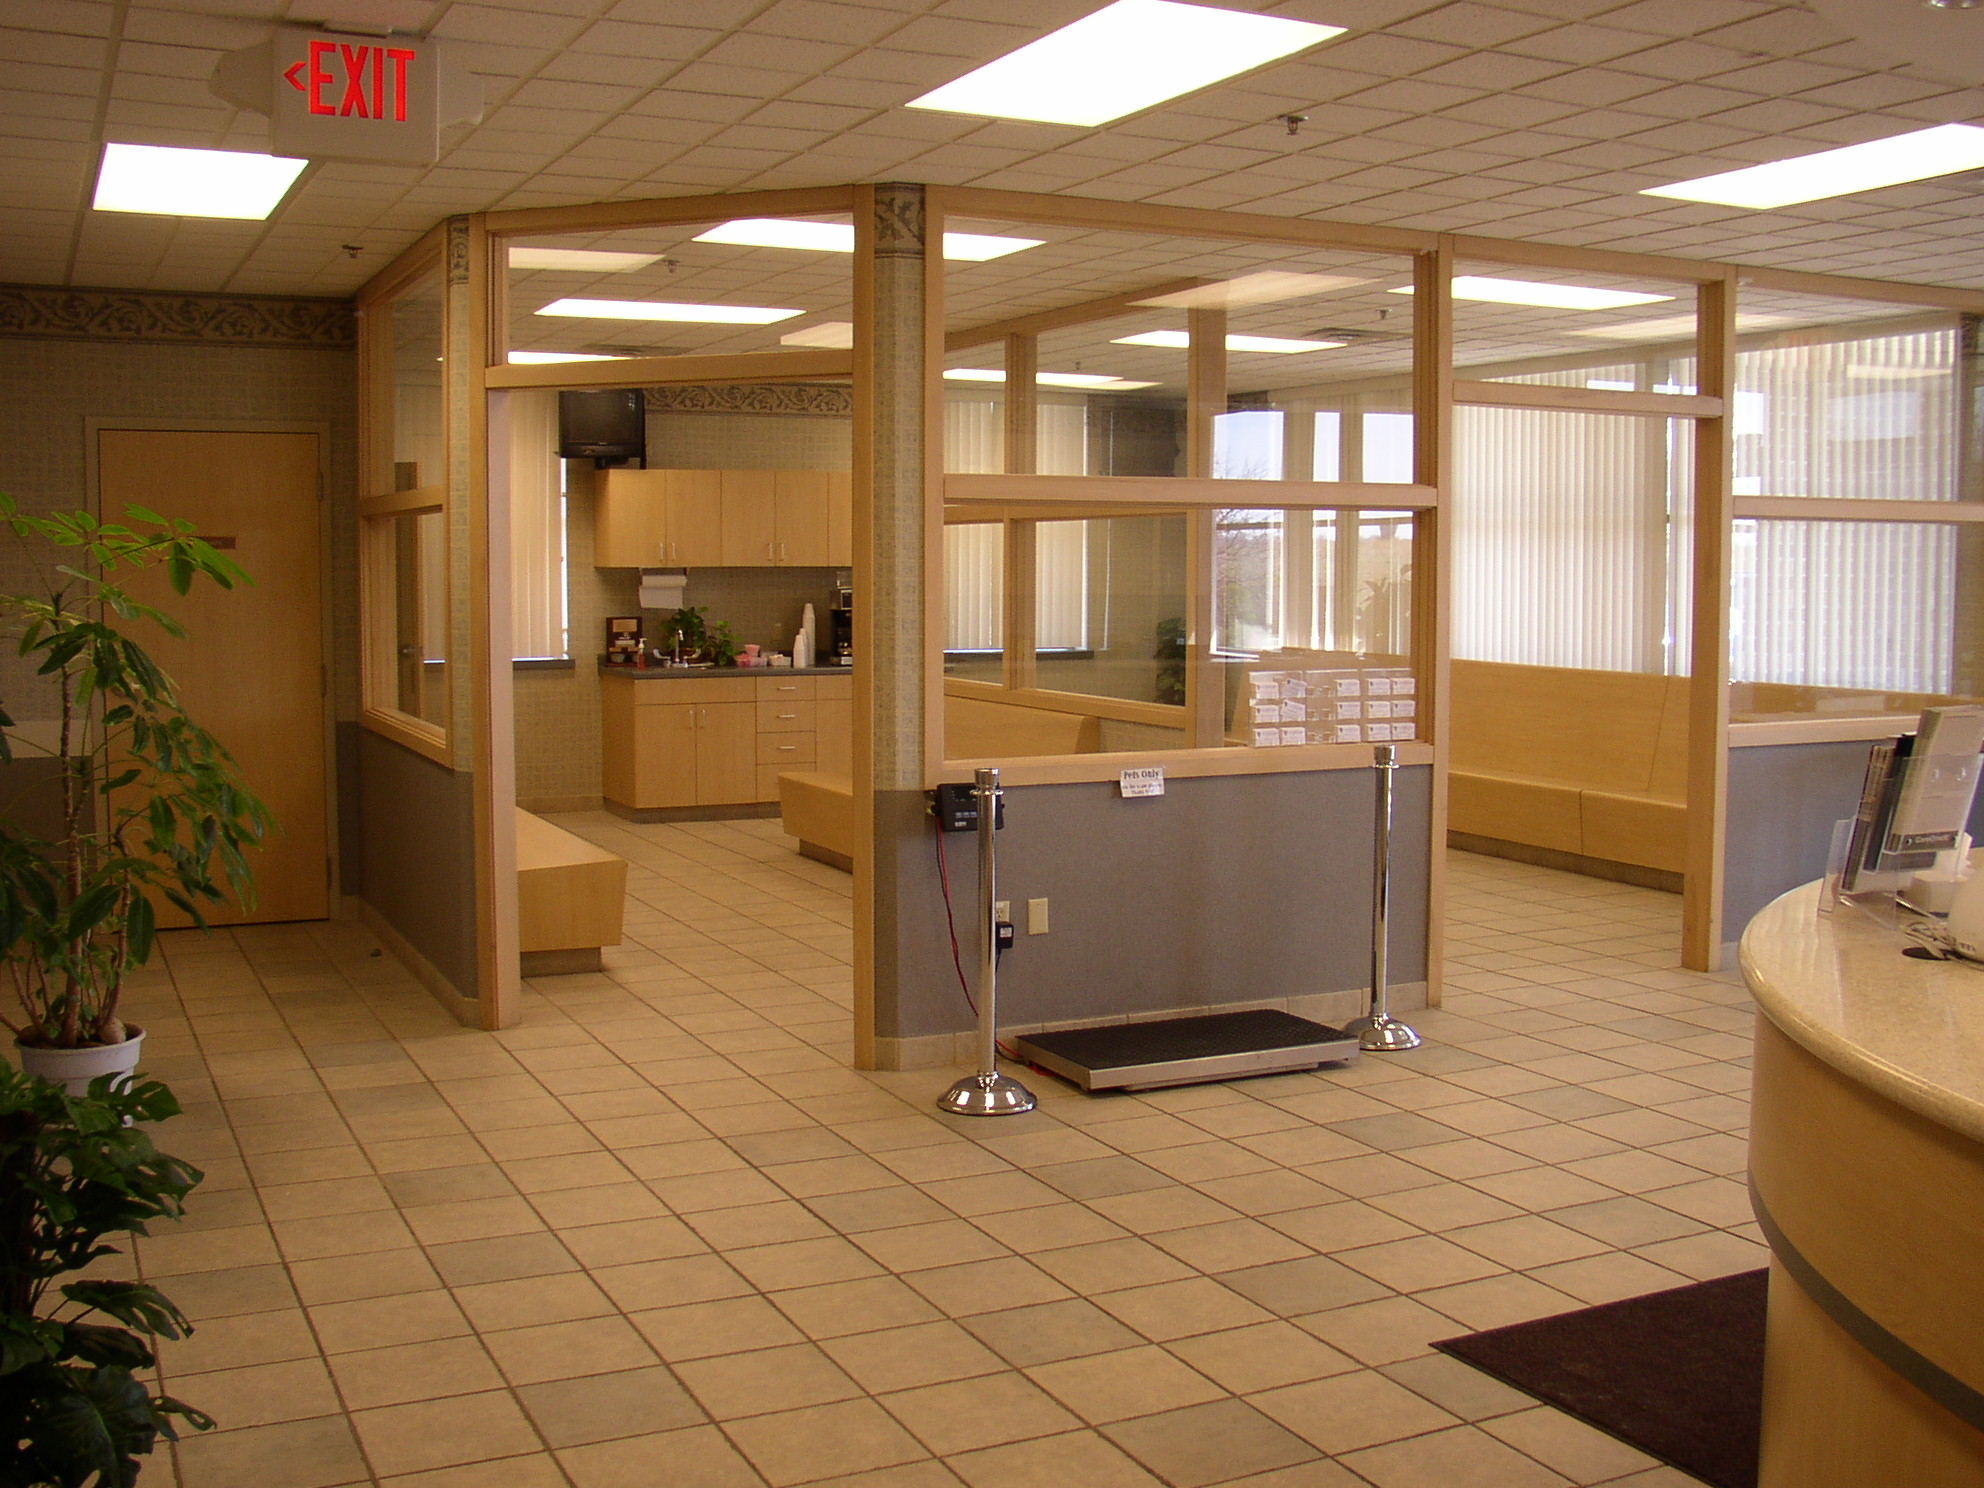 Allen G Ibsen Dvm Veterinary Animal Hospital Design